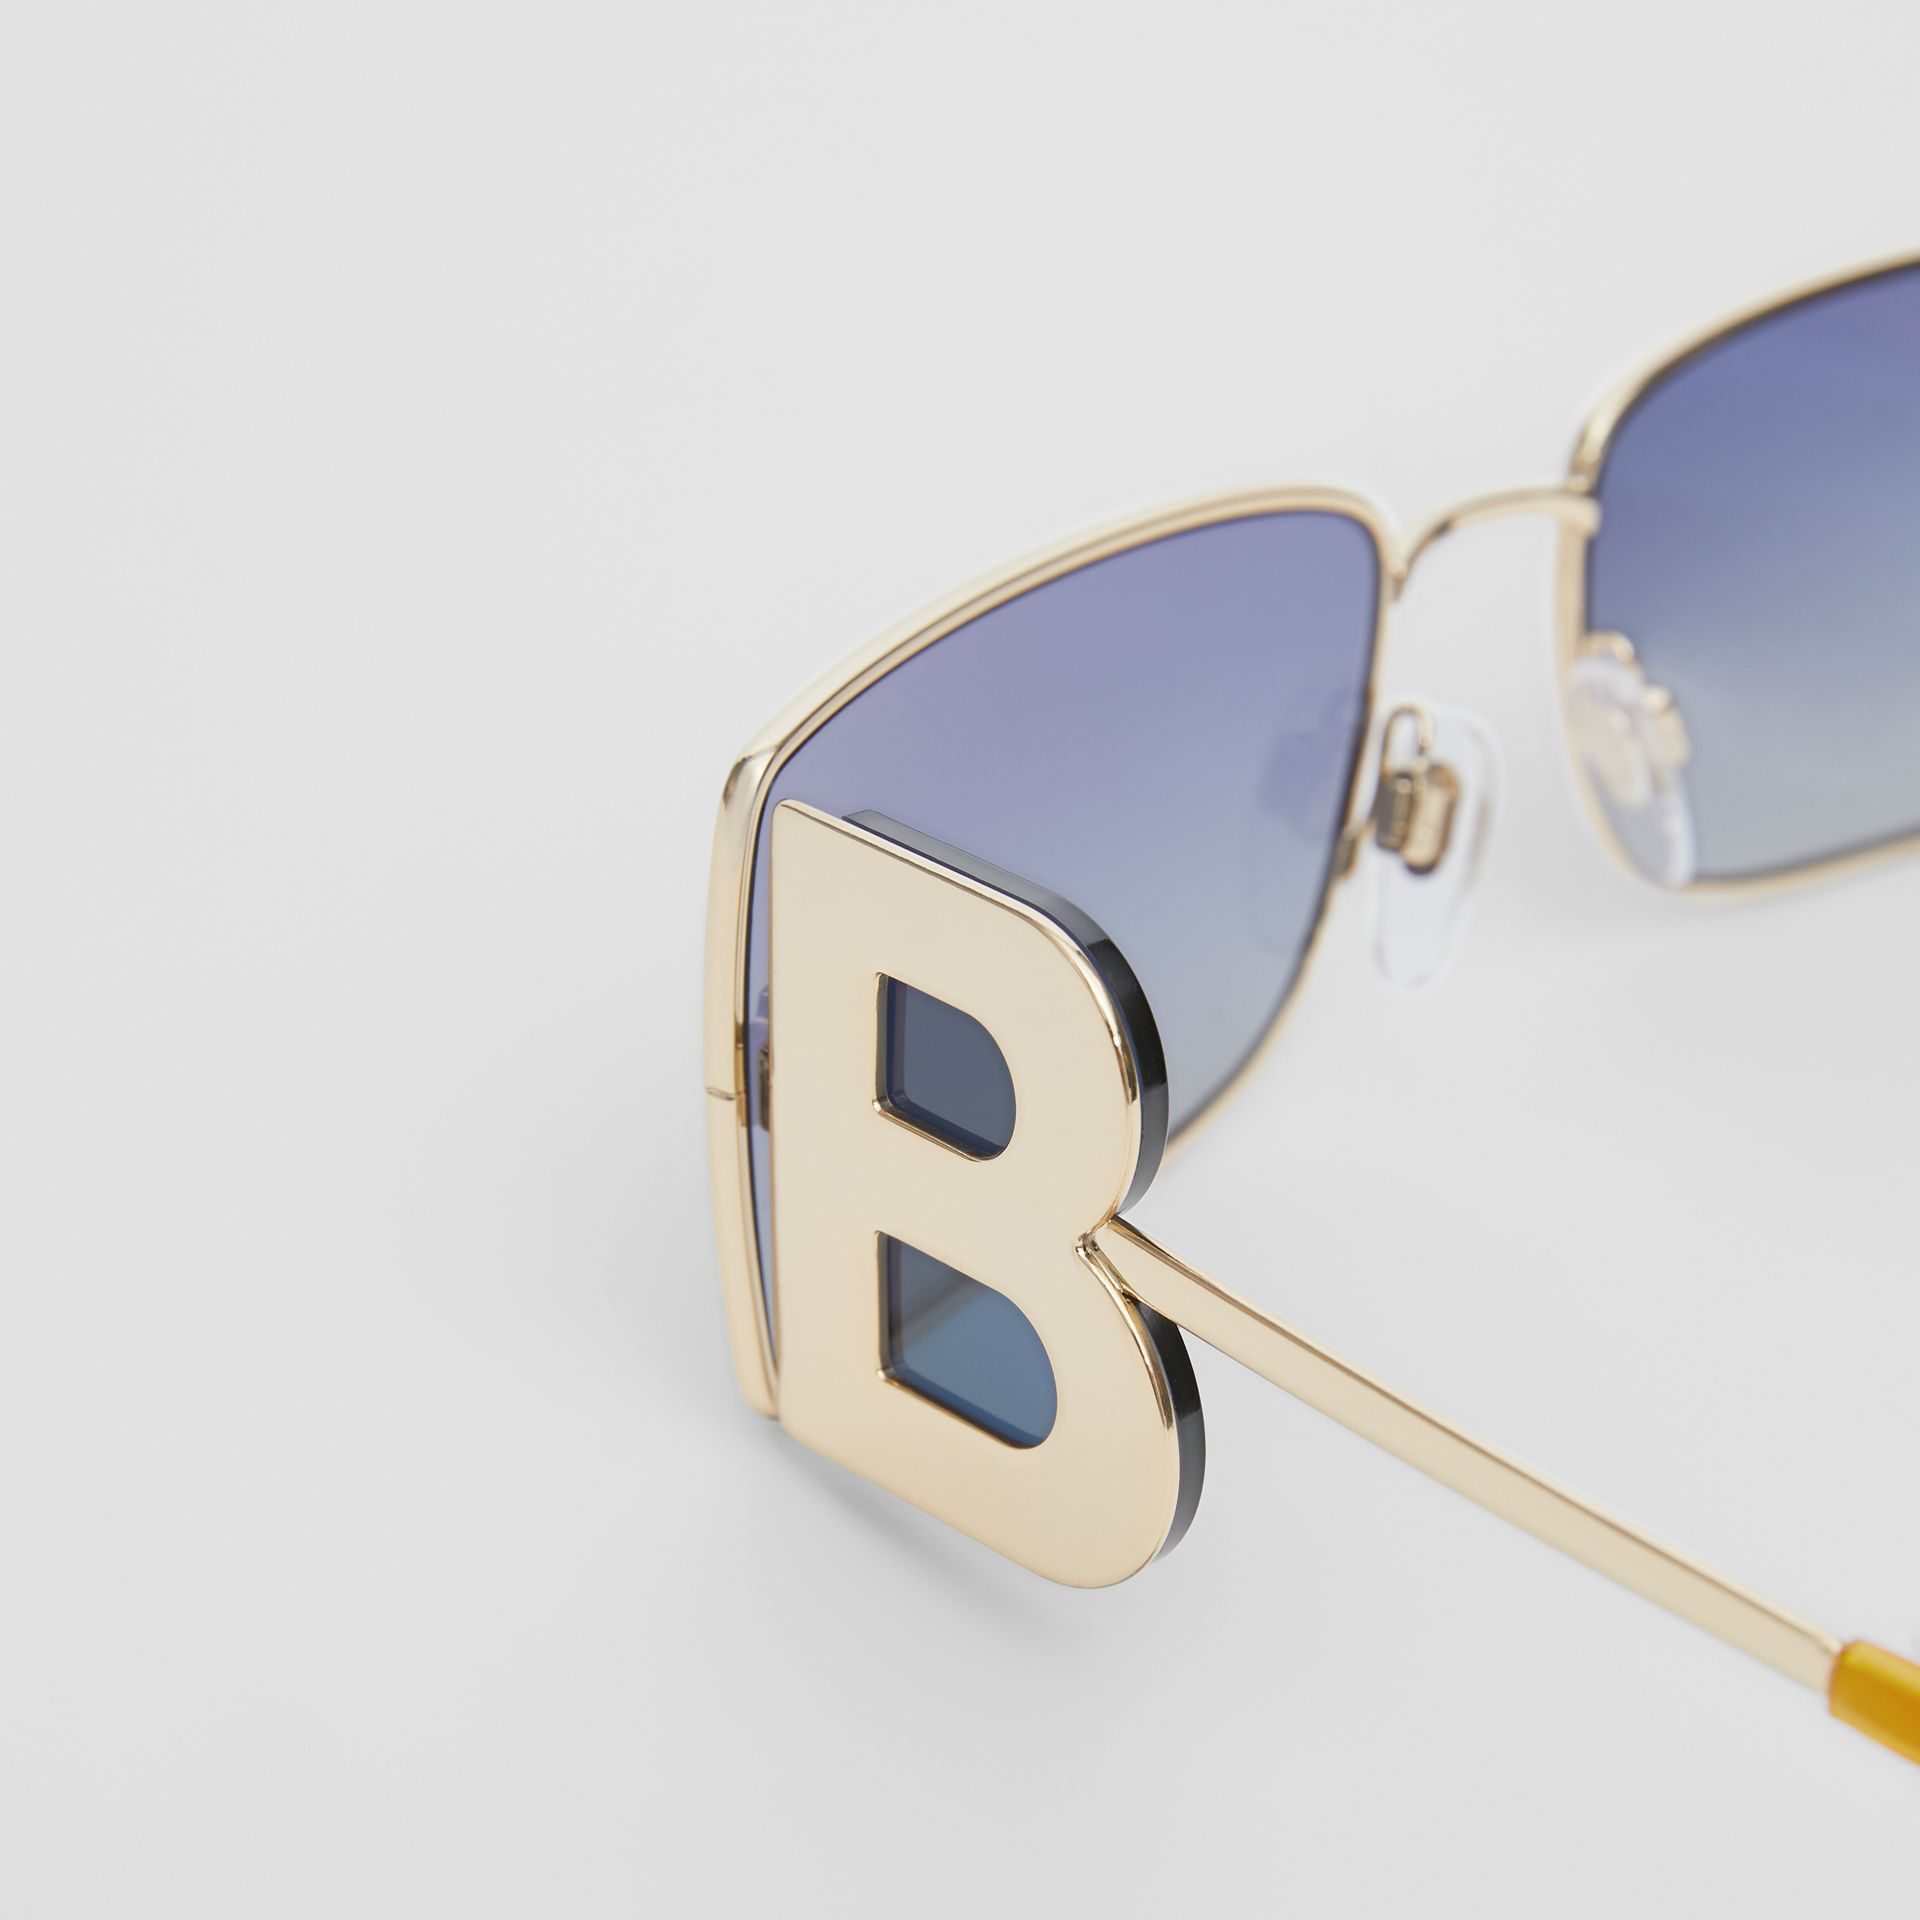 'B' Lens Detail Rectangular Frame Sunglasses in Tortoiseshell - Women | Burberry - gallery image 1